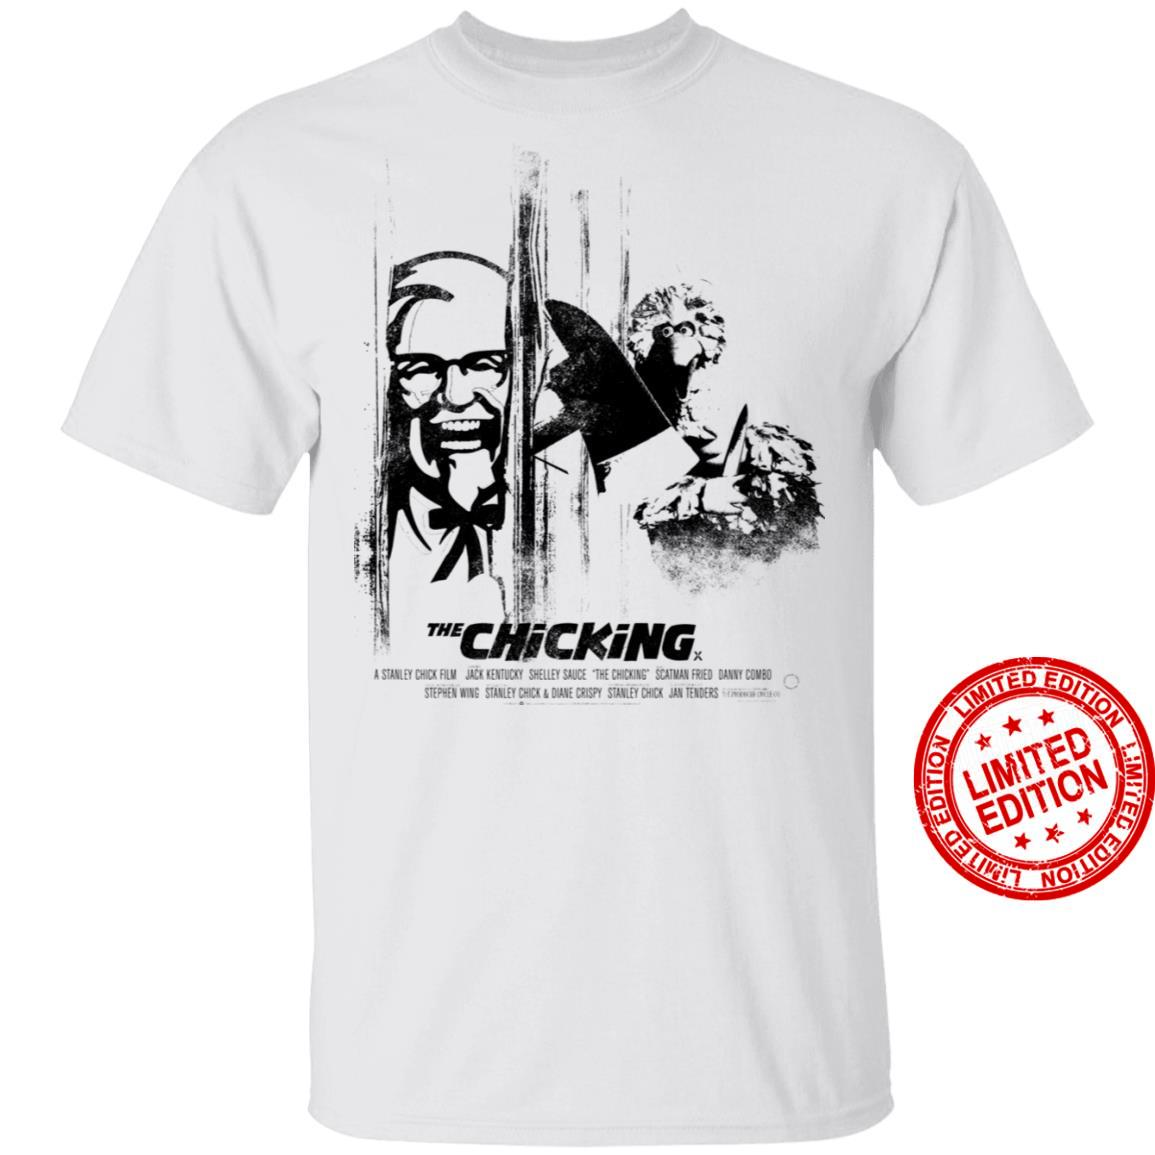 The Chicking A Stanley Chick Film Jack Kentucky Shelley Sauce The Chicking Scatman Fried Danny Combo Shirt